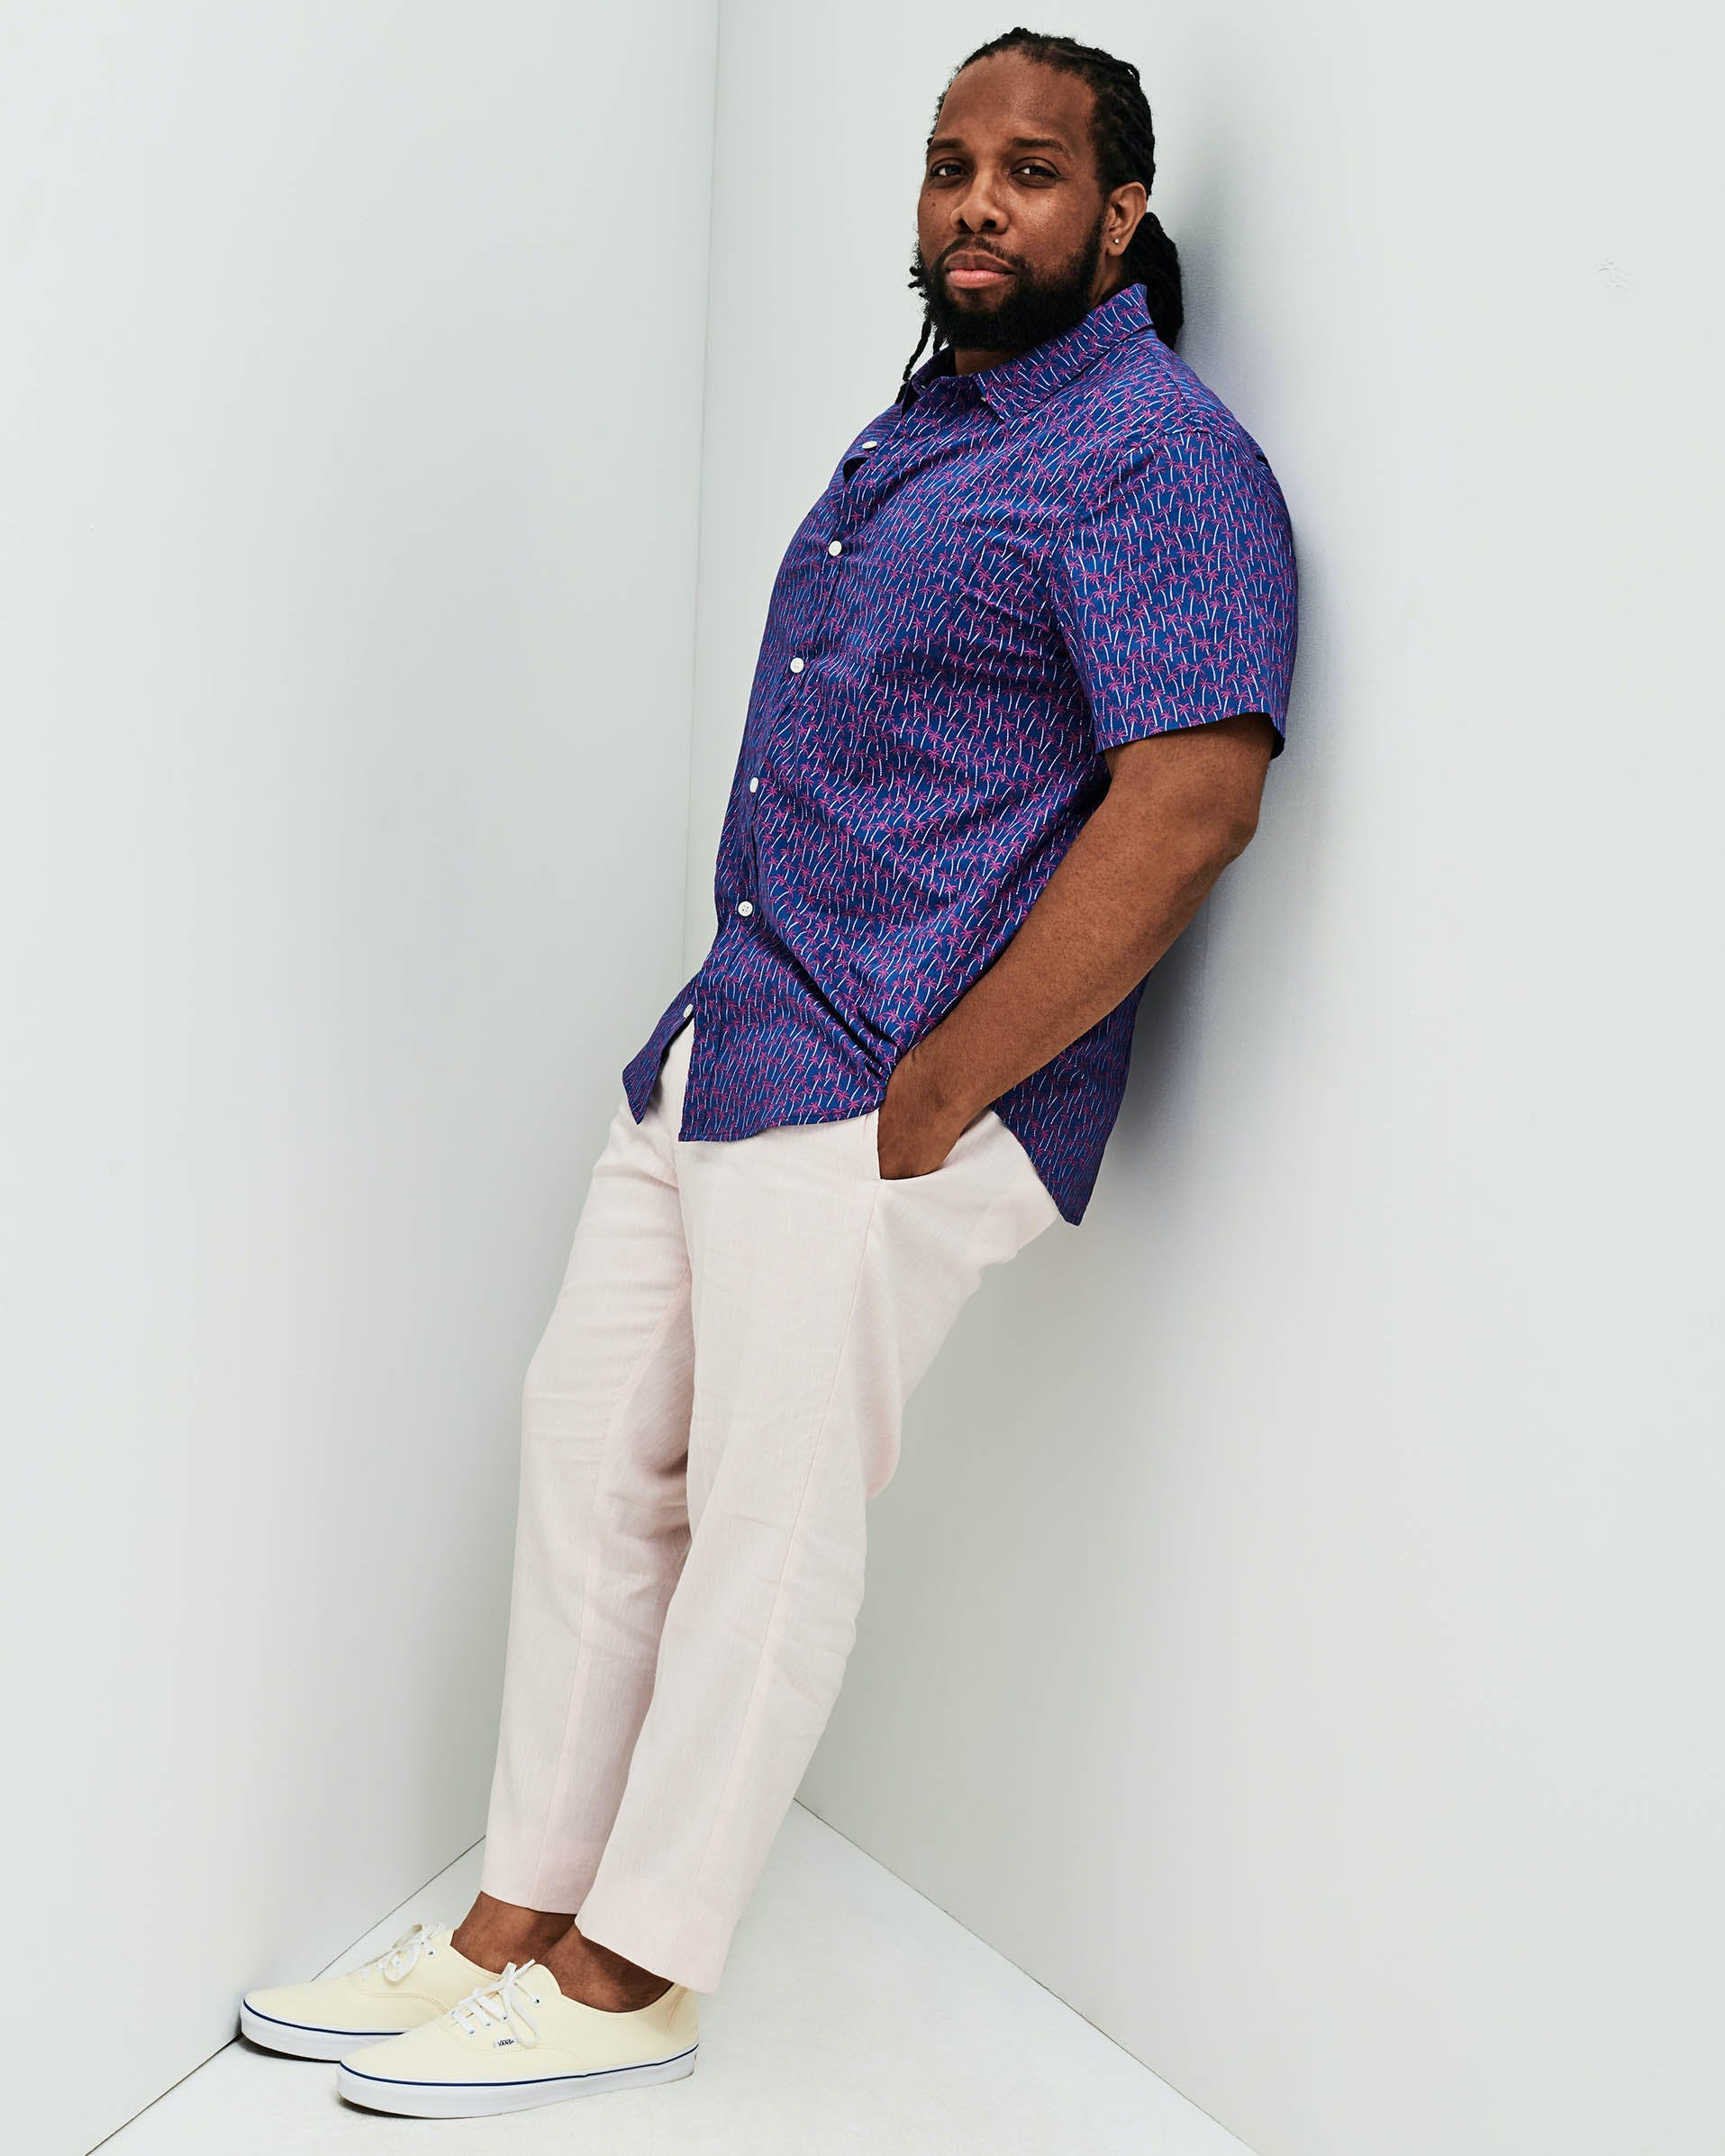 c42976e6 Bonobos: Better Fitting, Better Looking Men's Clothing & Accessories